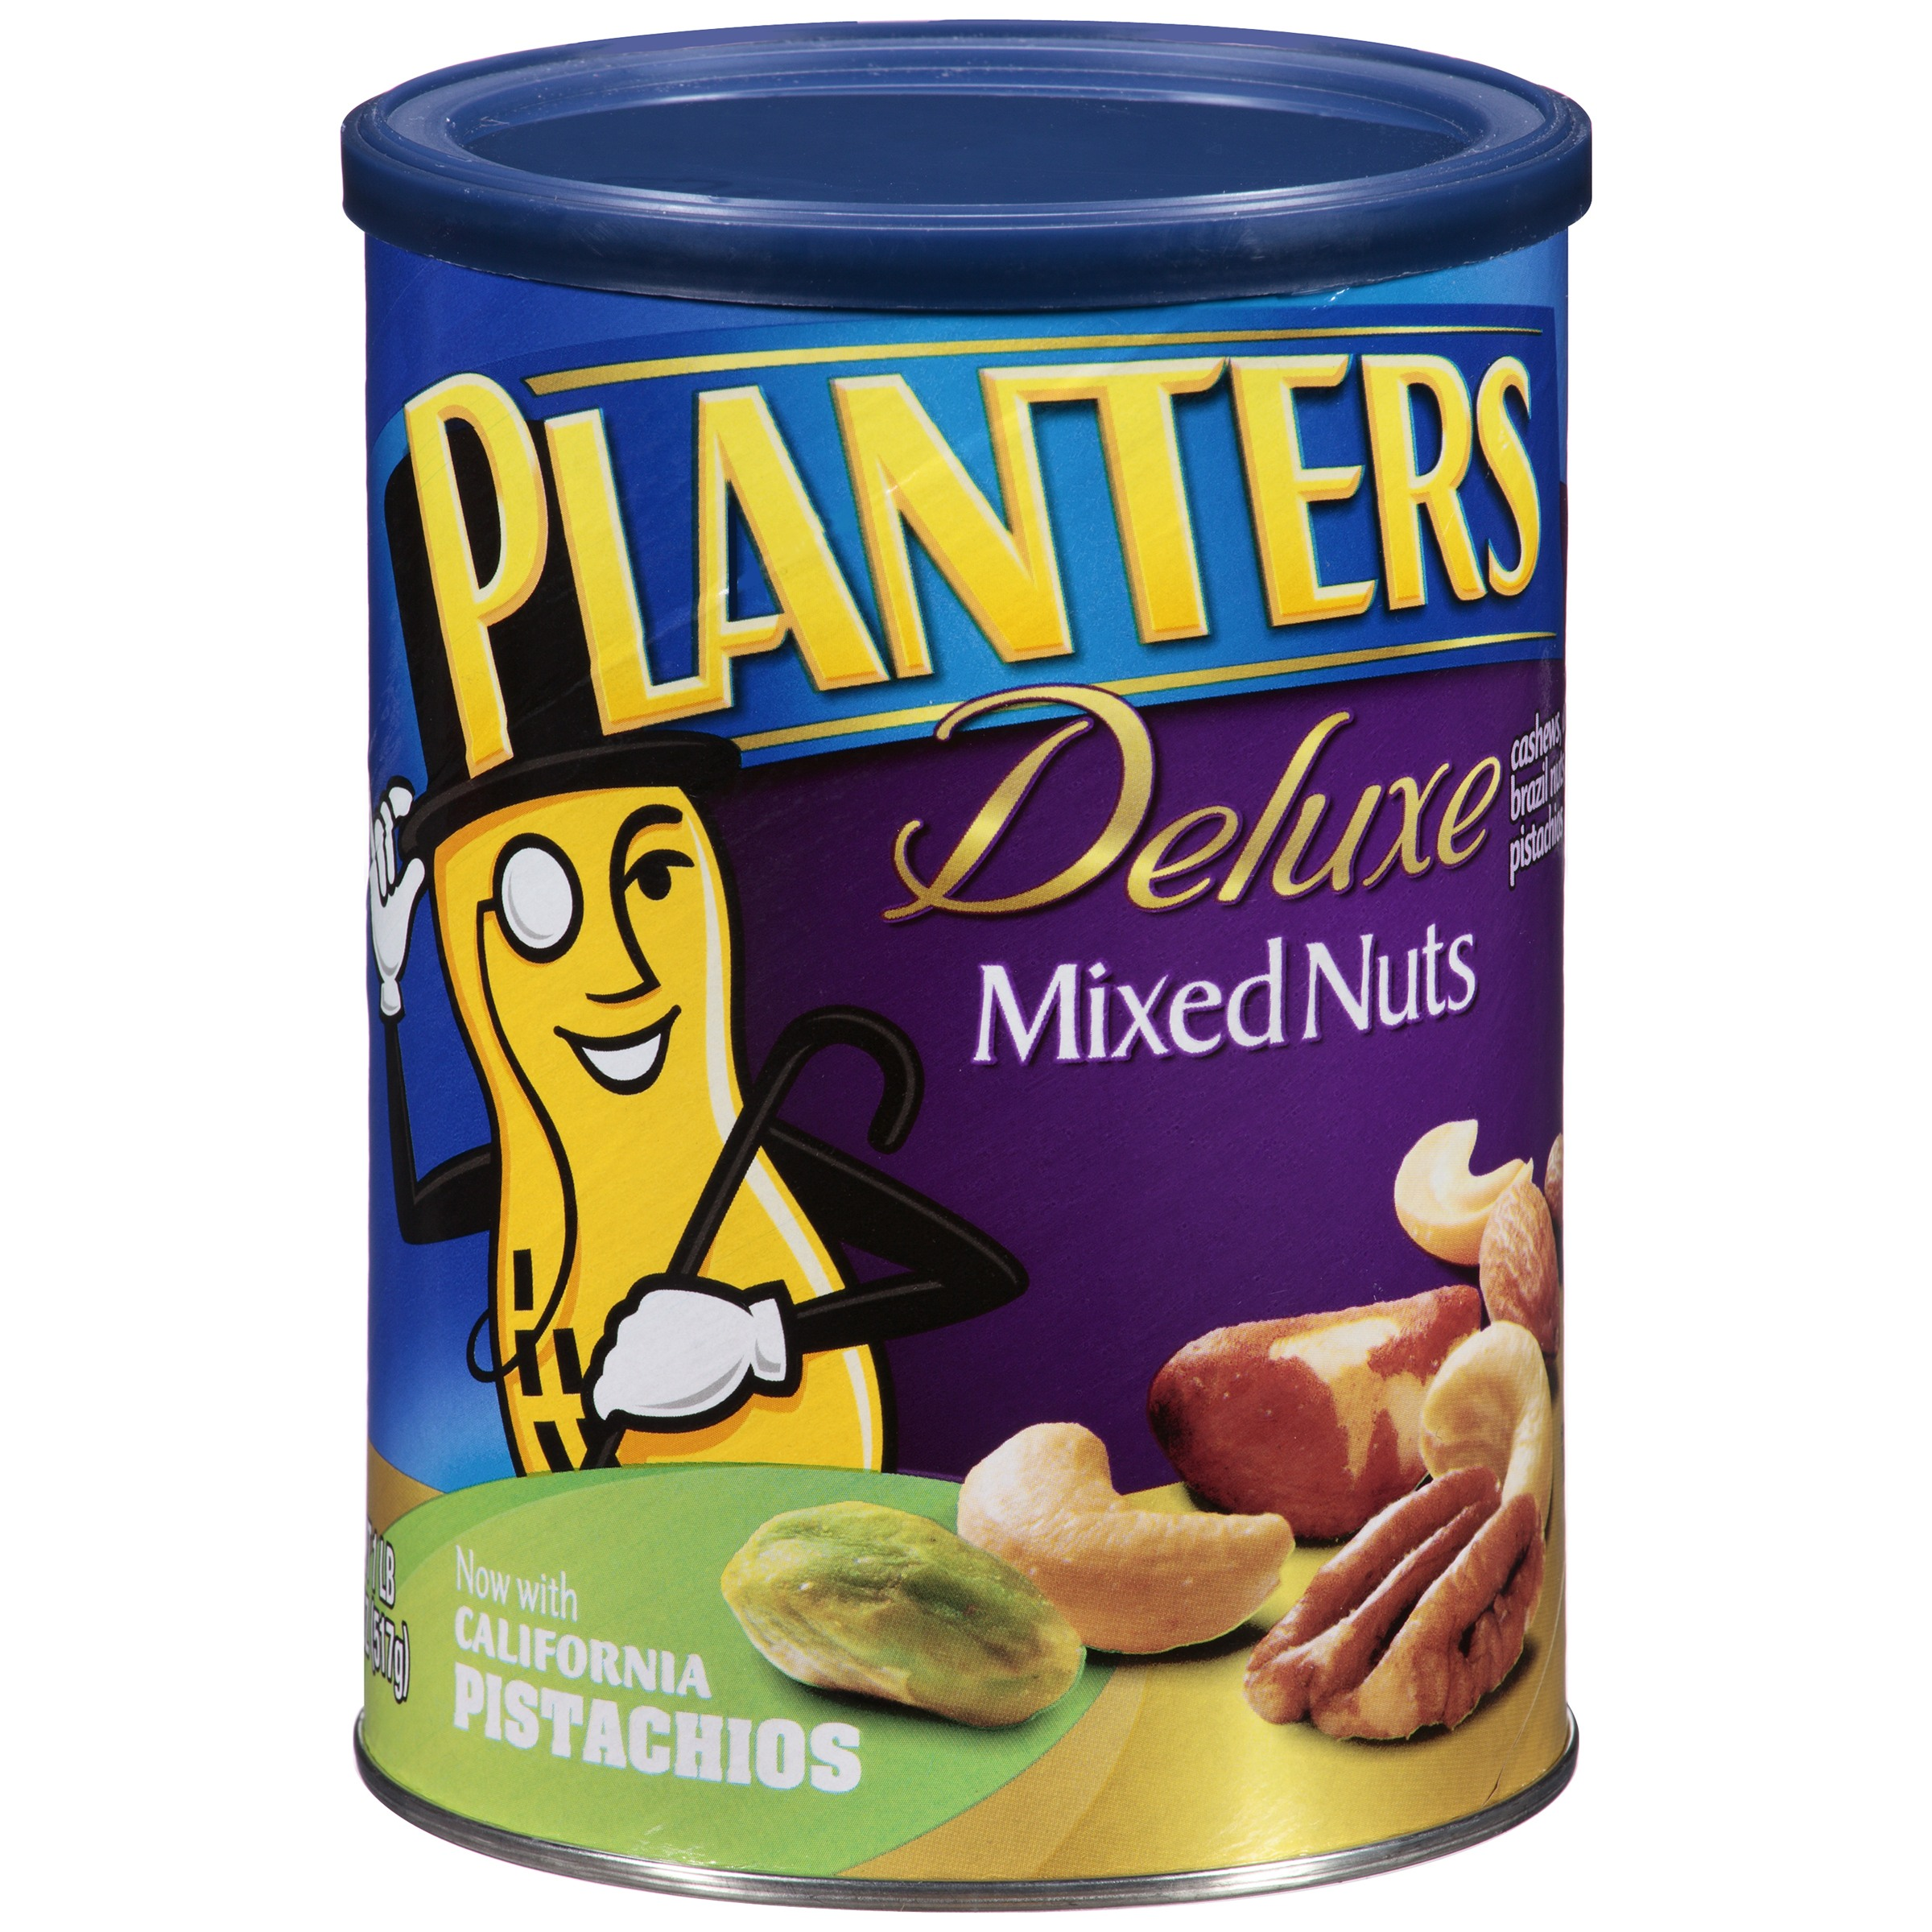 Planters Deluxe Mixed Nuts 18.25 oz. Canister